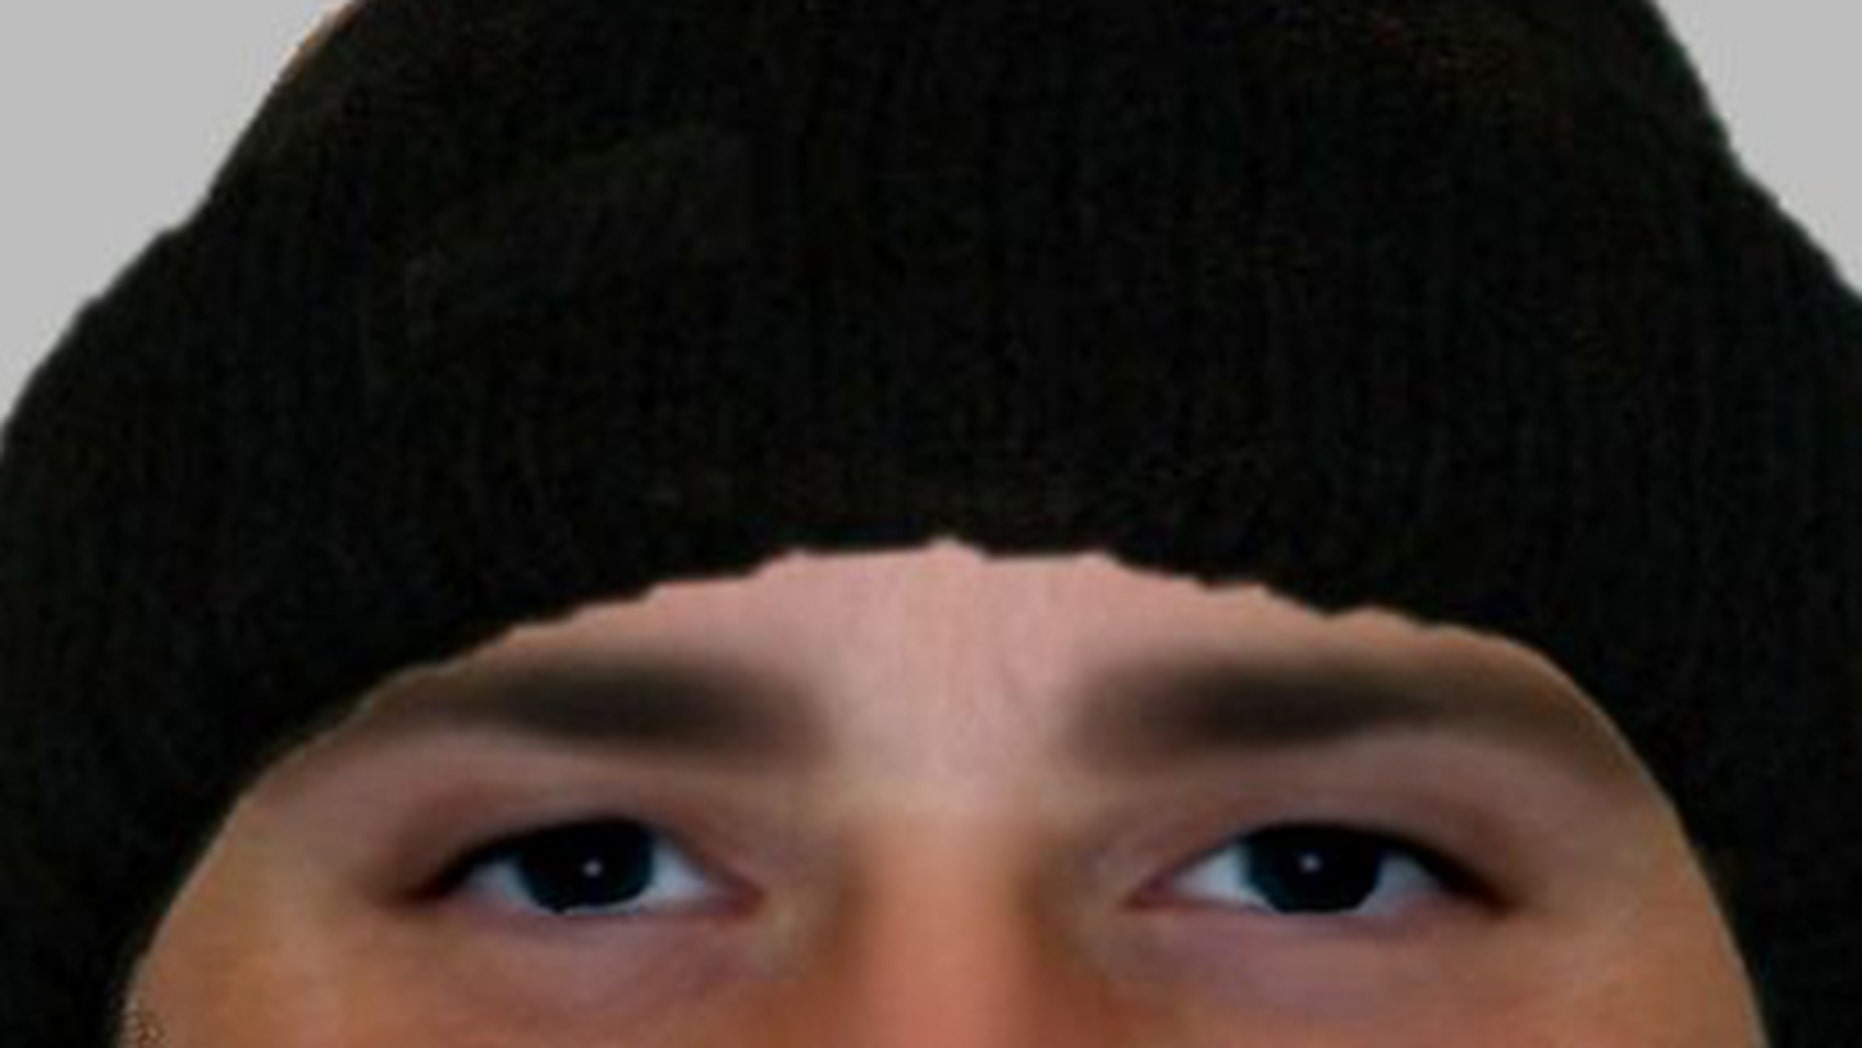 Police in England are hoping this computer-generated sketch will help them find a burglary suspect.